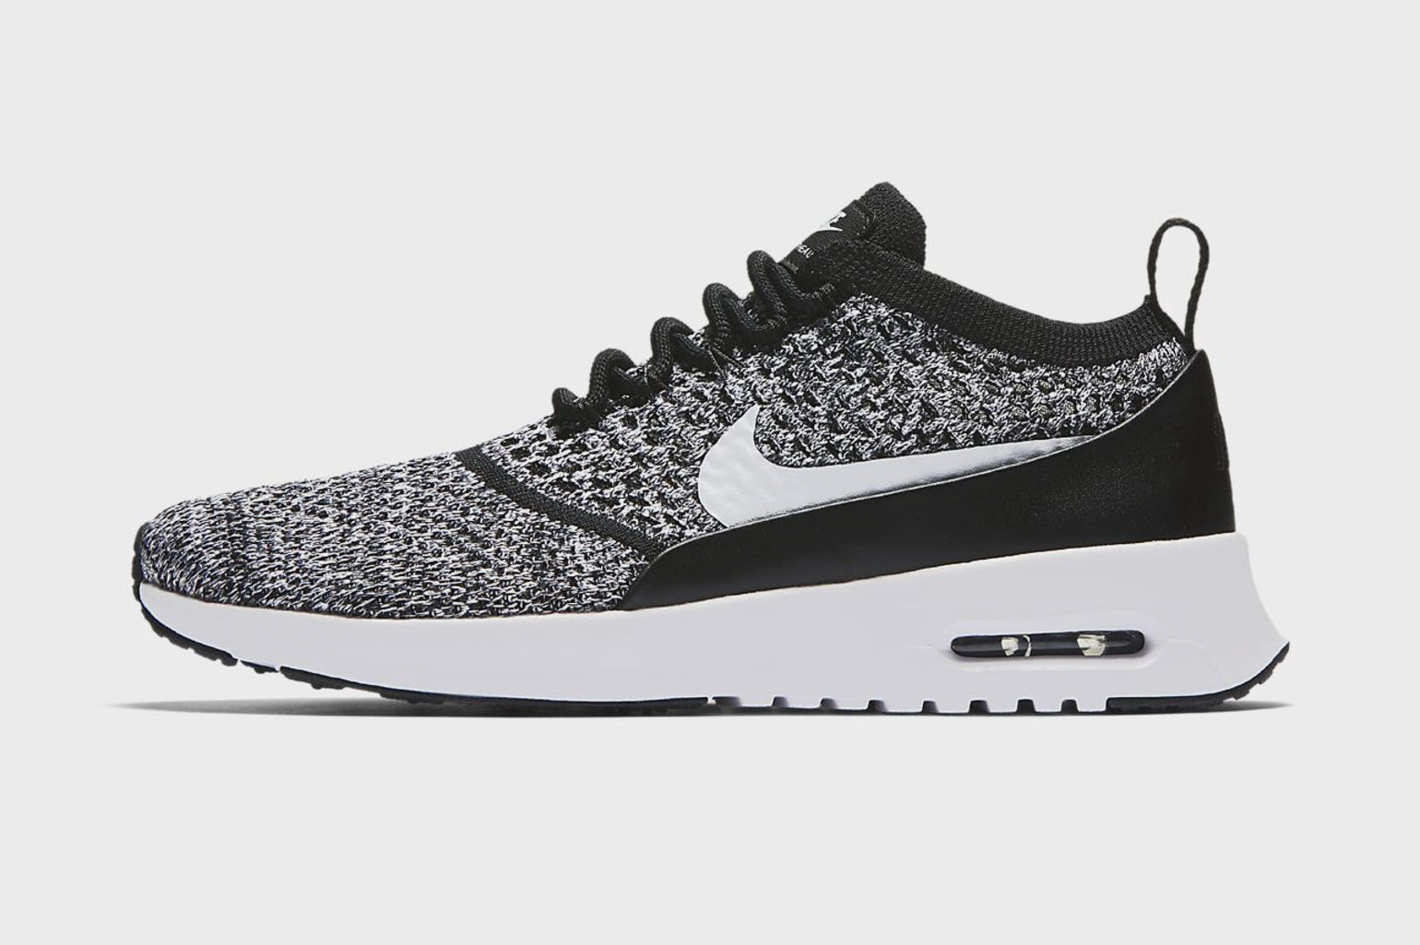 watch e5a6a 73415 Nike Air Max Thea Ultra Flyknit Womens Shoe